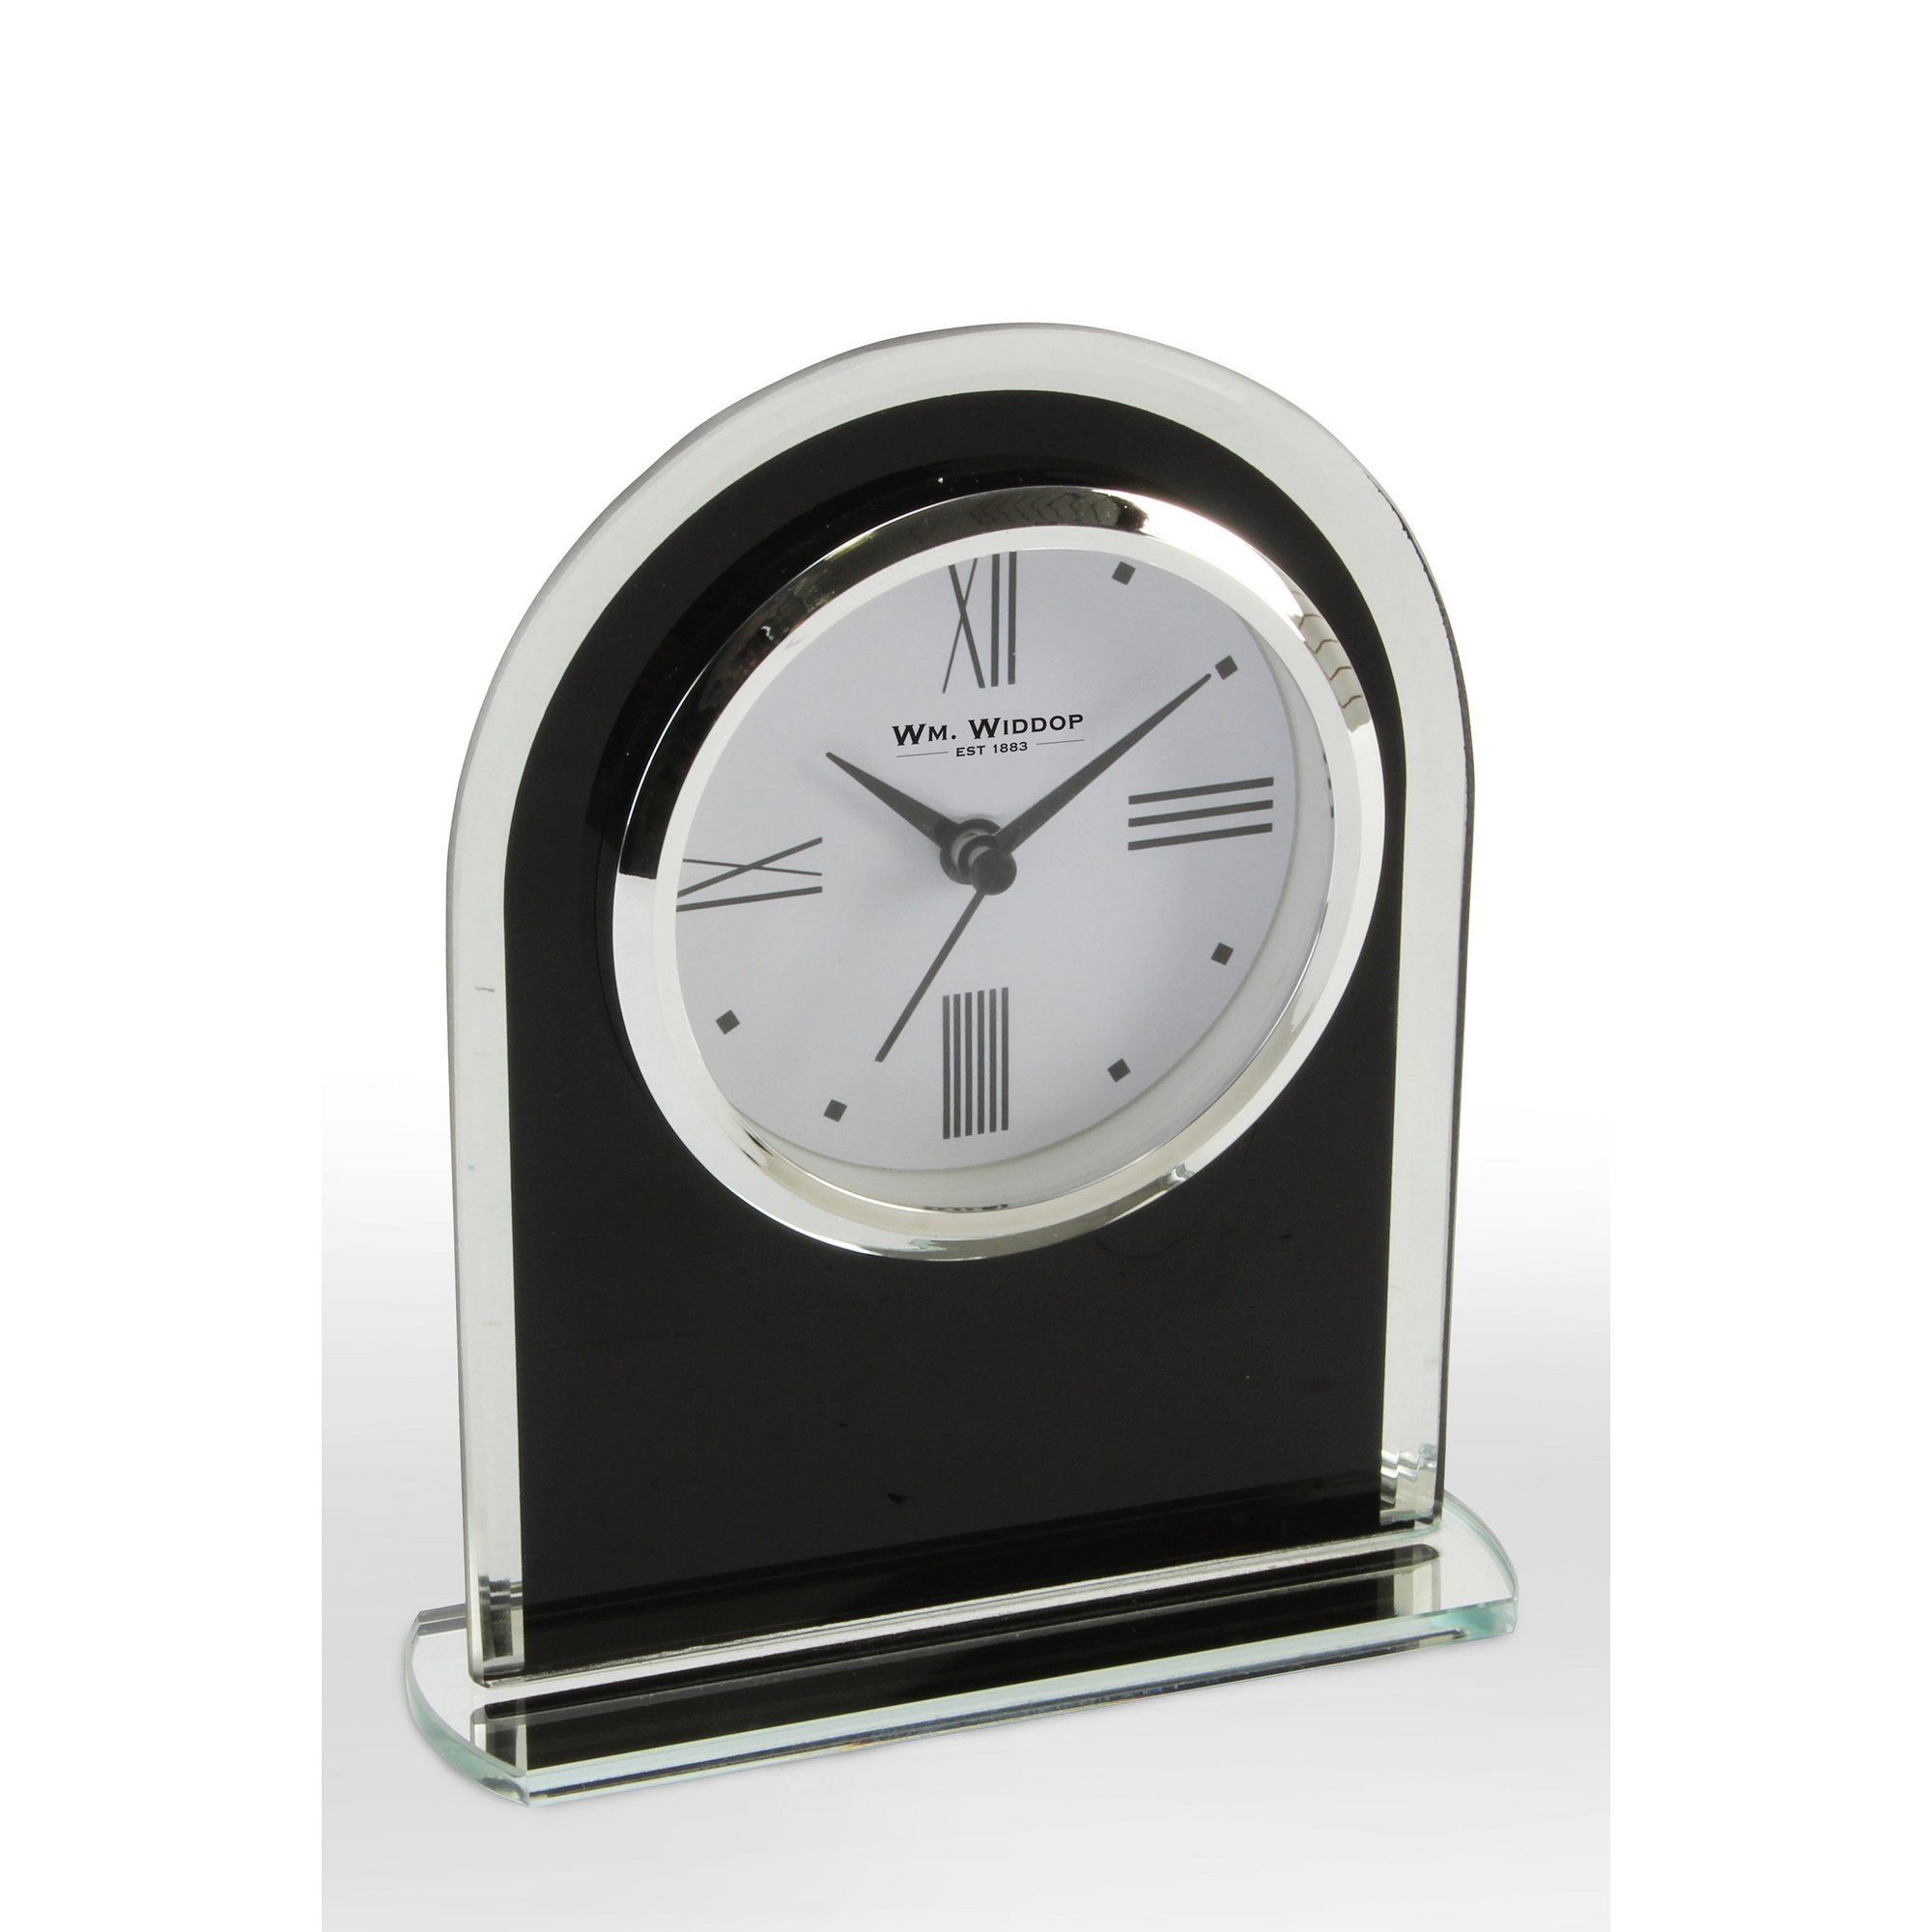 Image of Arched Mantel Clock